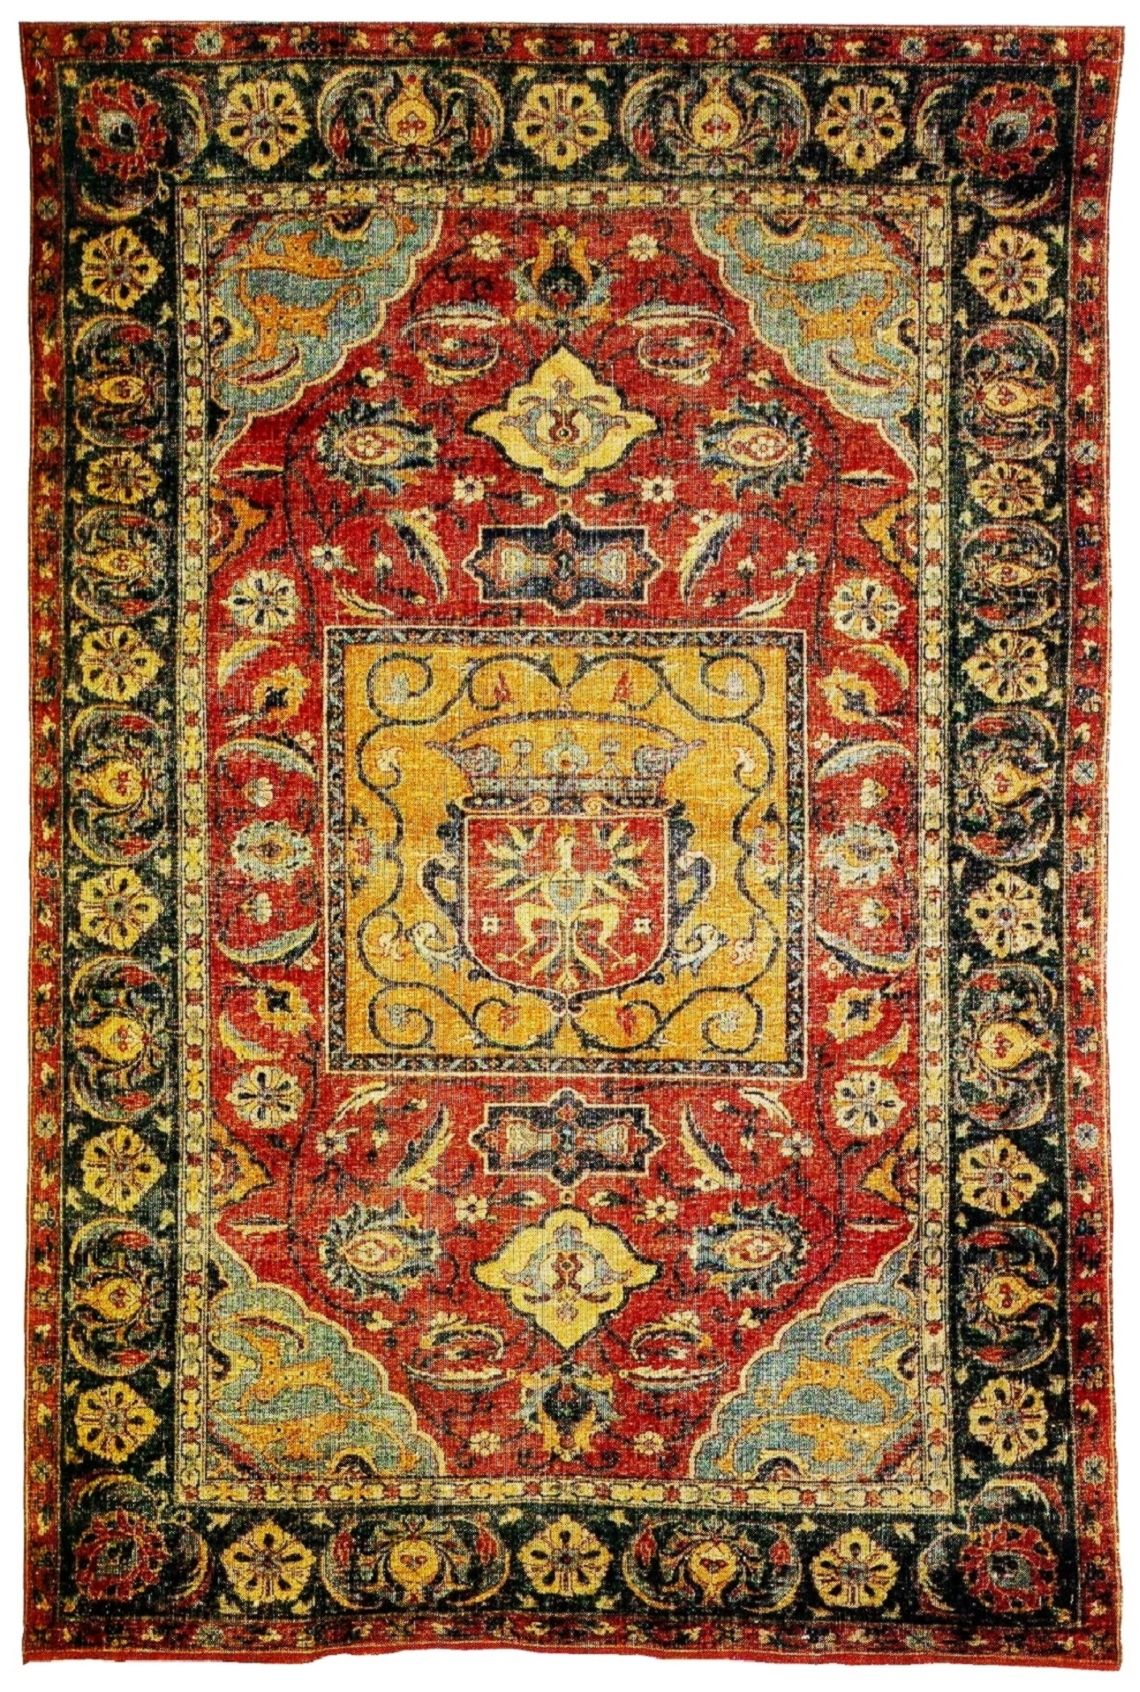 safavid kilim with the coat of arms of sigismund iii vasa polish